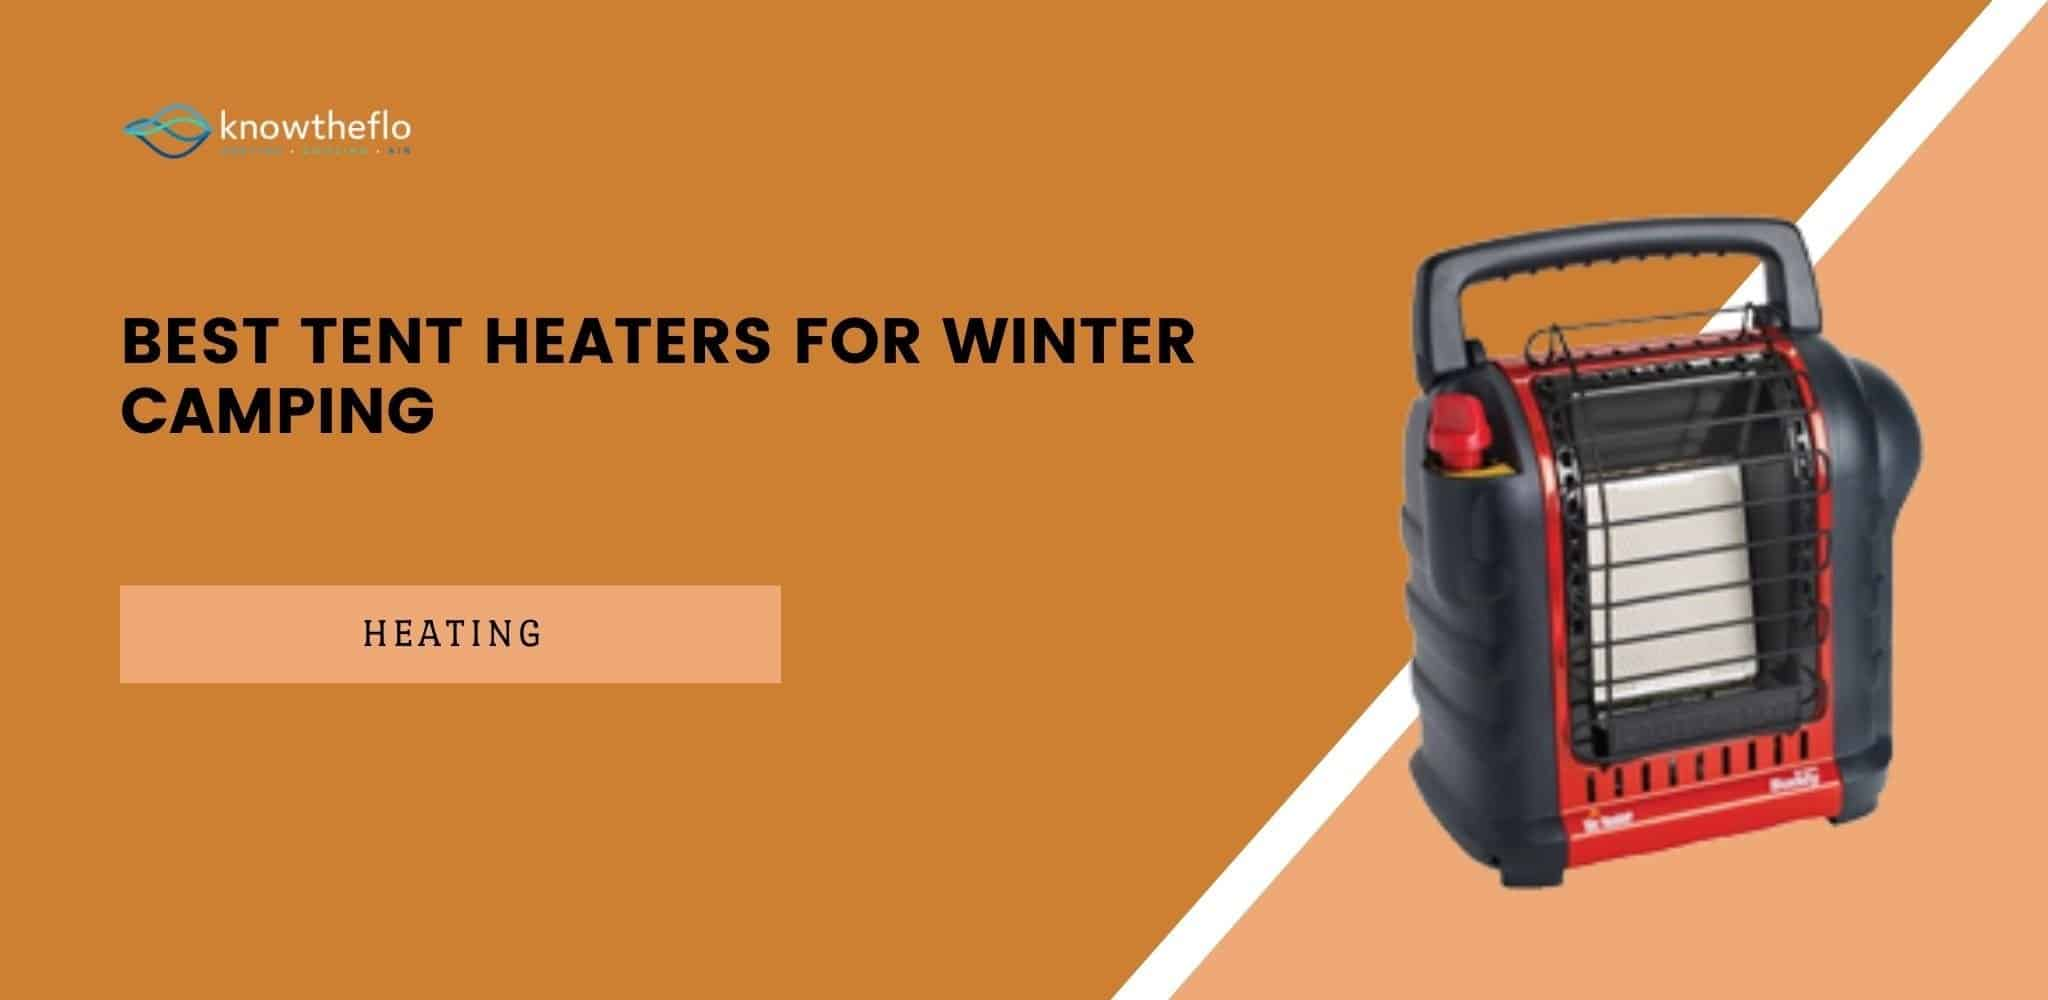 Best Tent Heaters for Winter Camping in 2020-2020